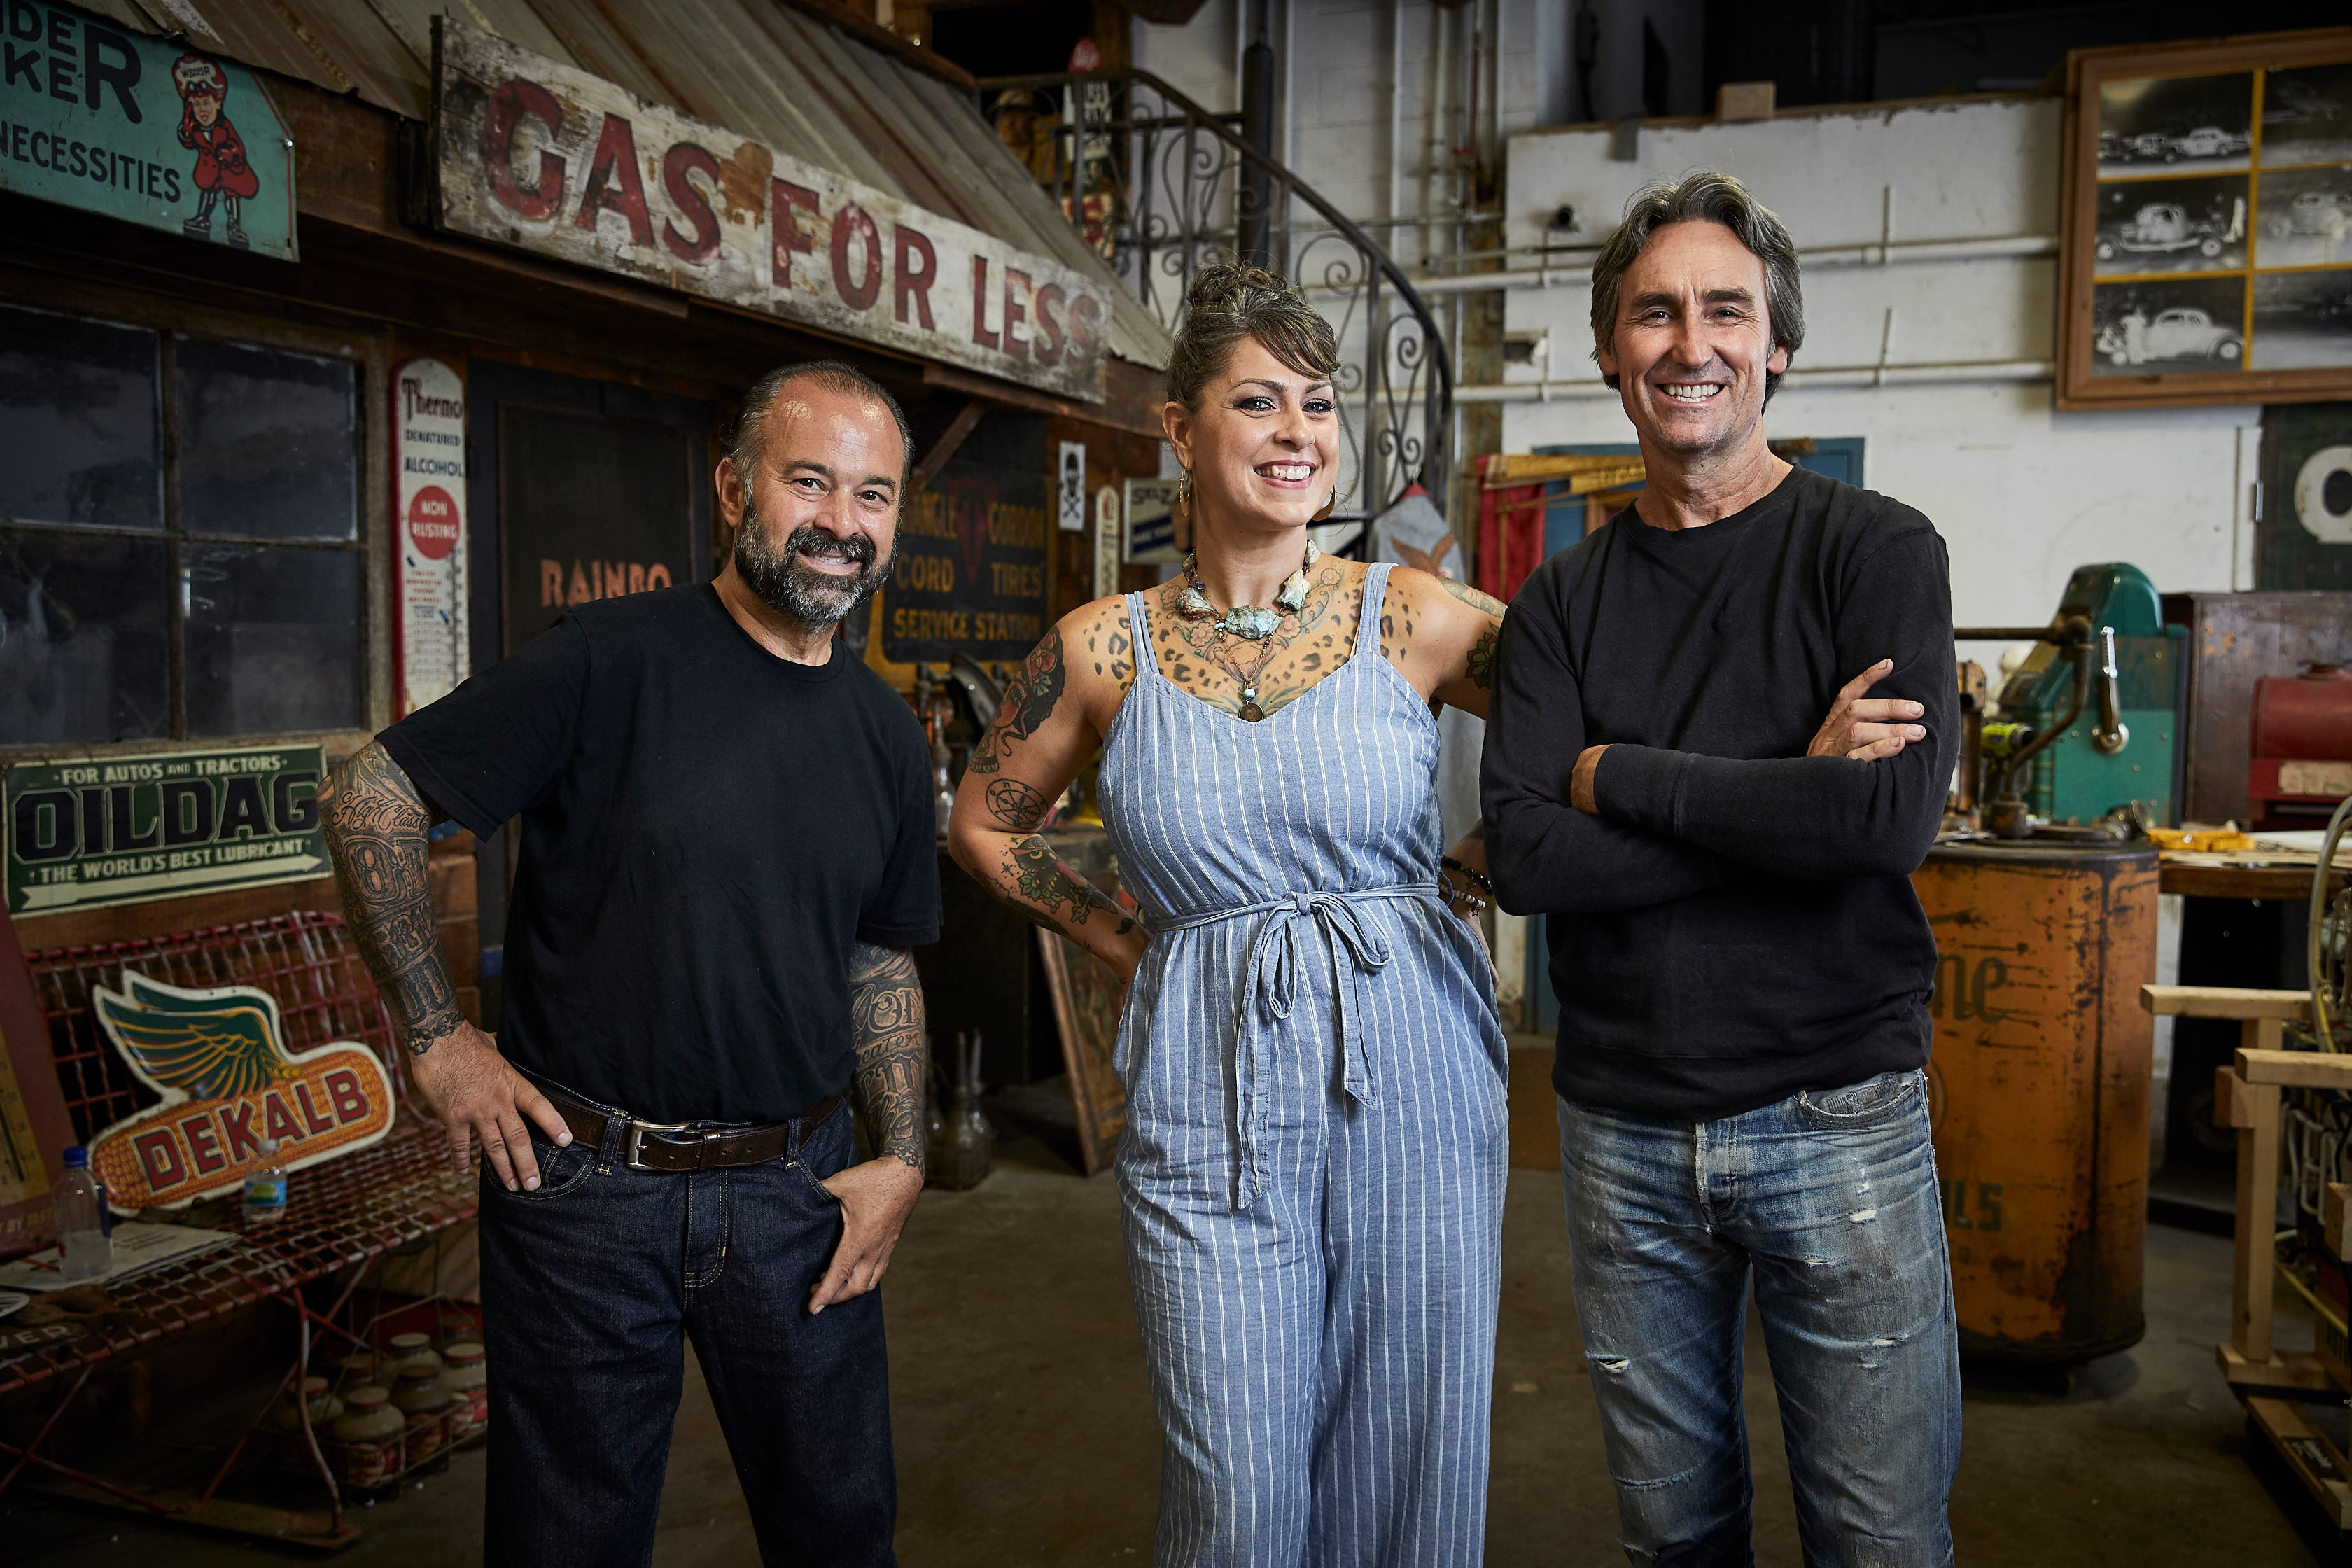 American pickers happened to frank in what Why did